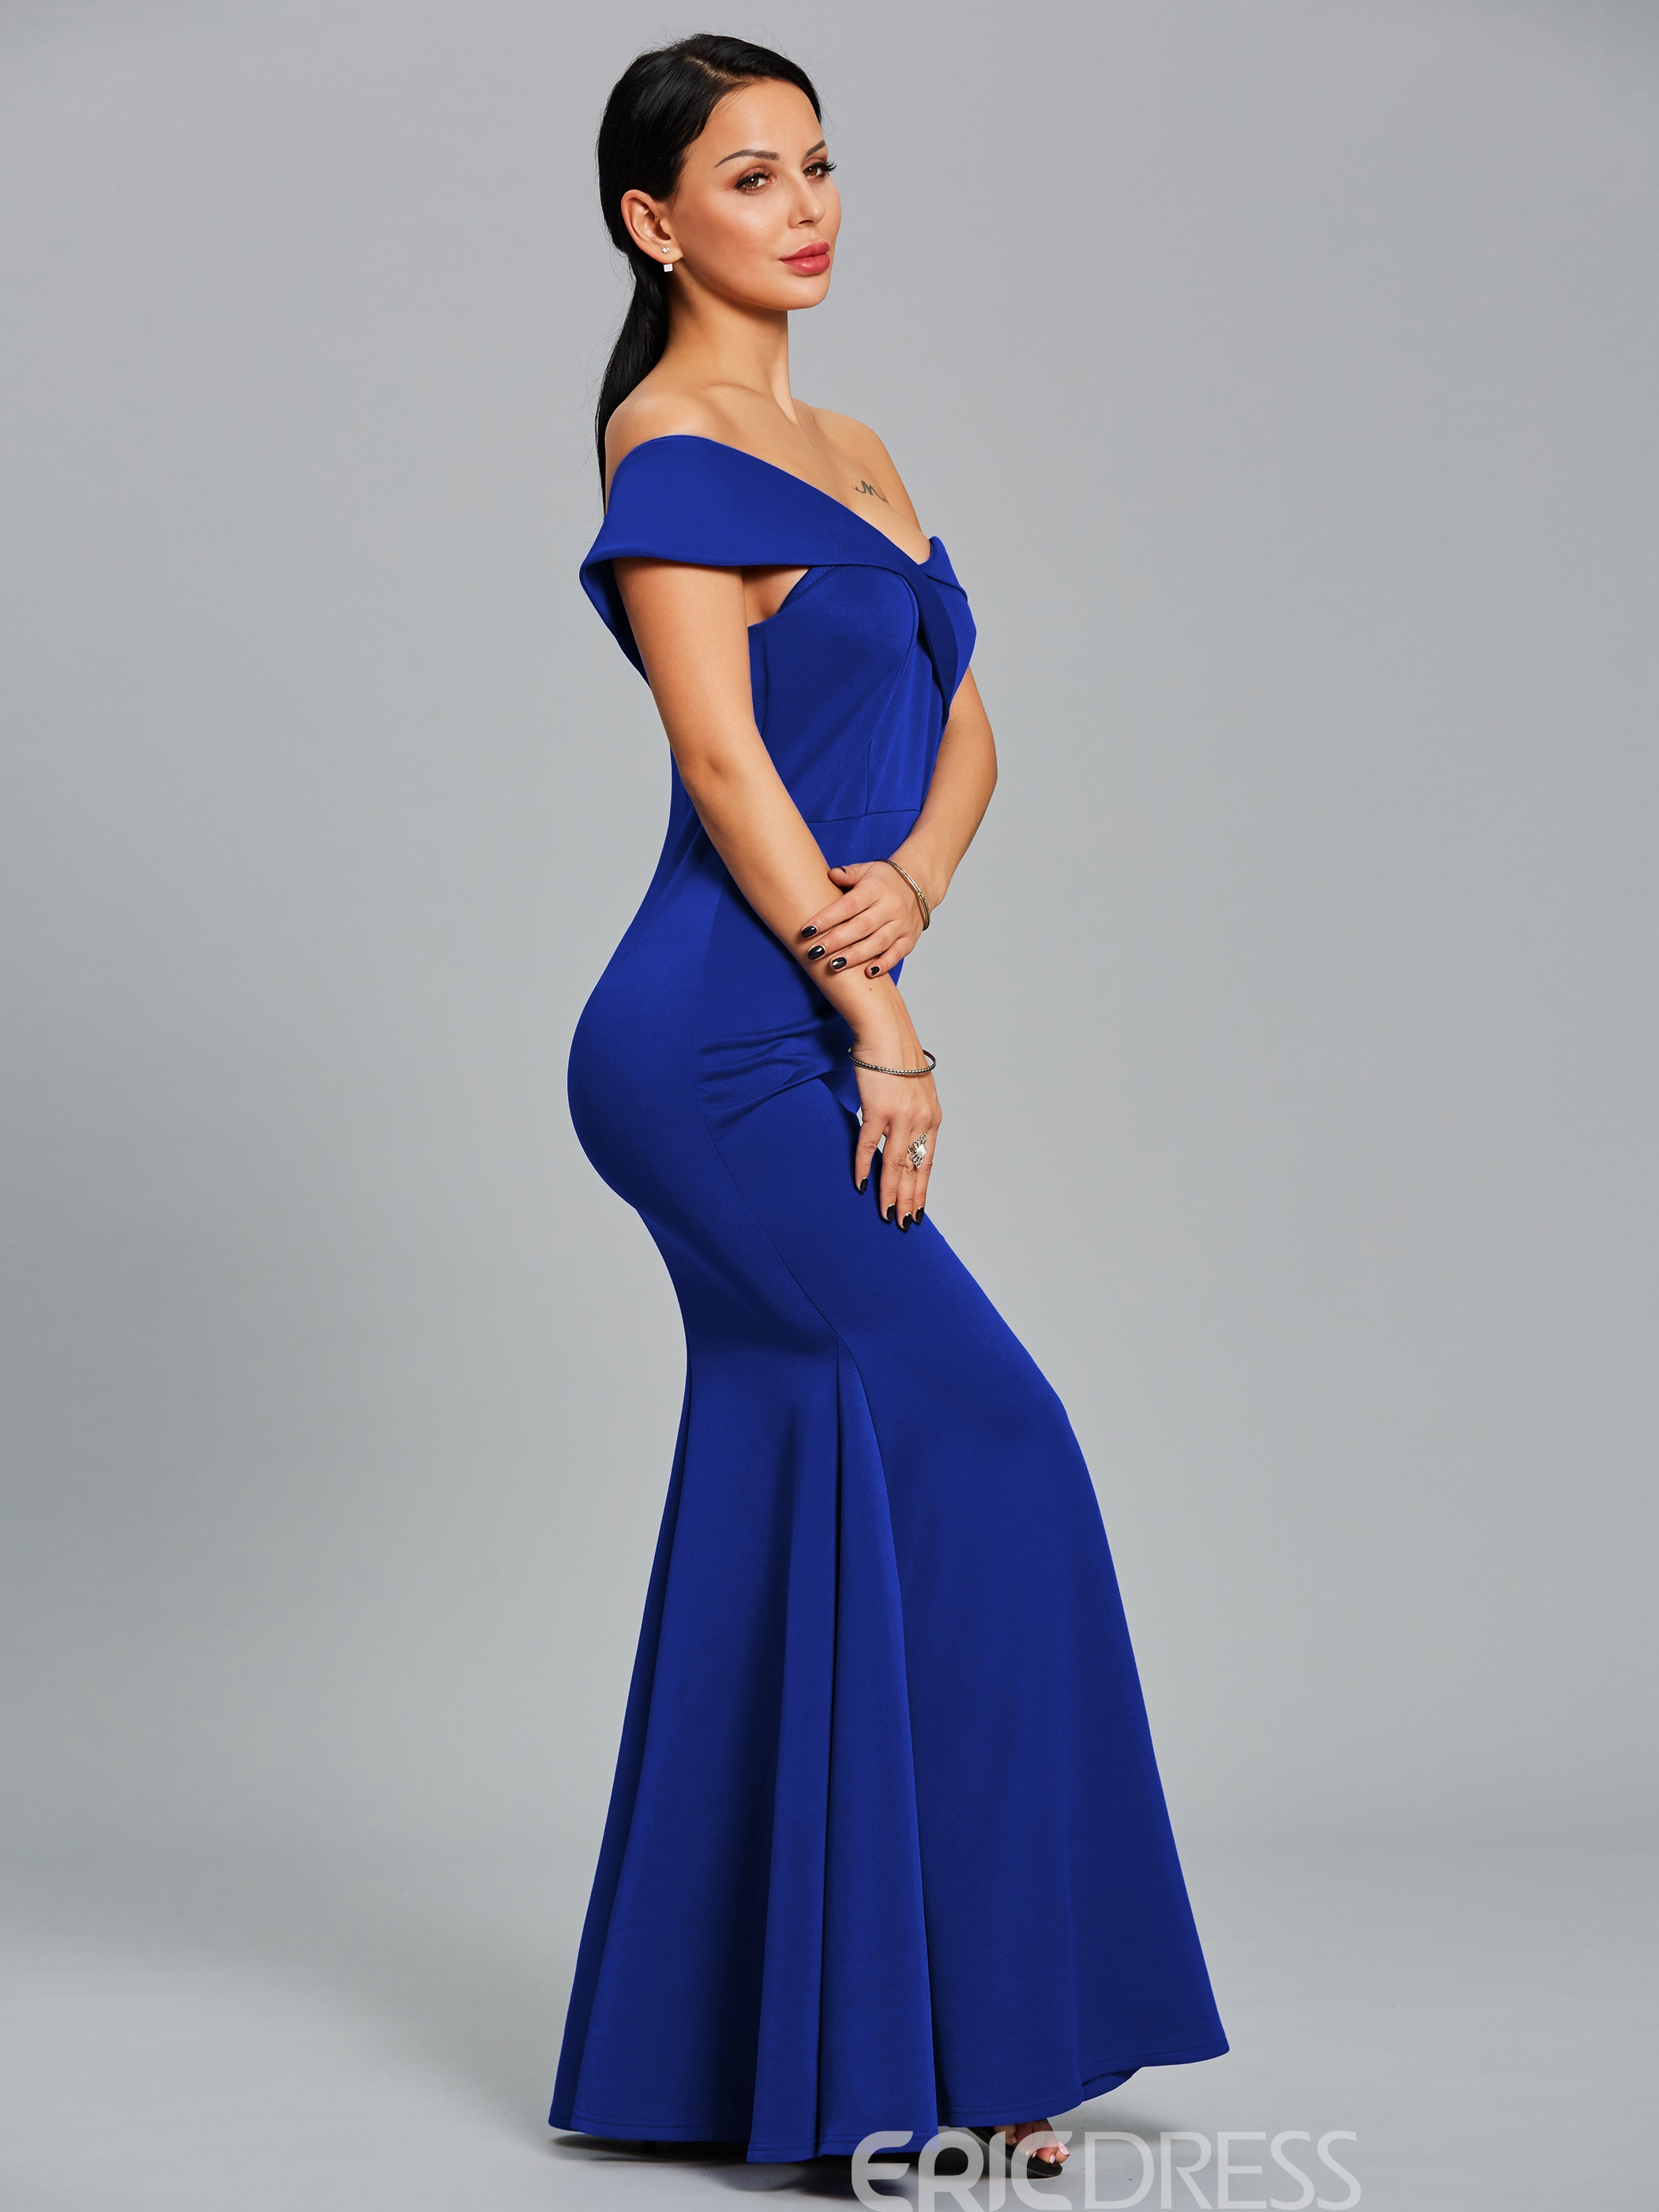 Ericdress Backless Strapless Off-the-Shoulder Belt Mermaid Dress